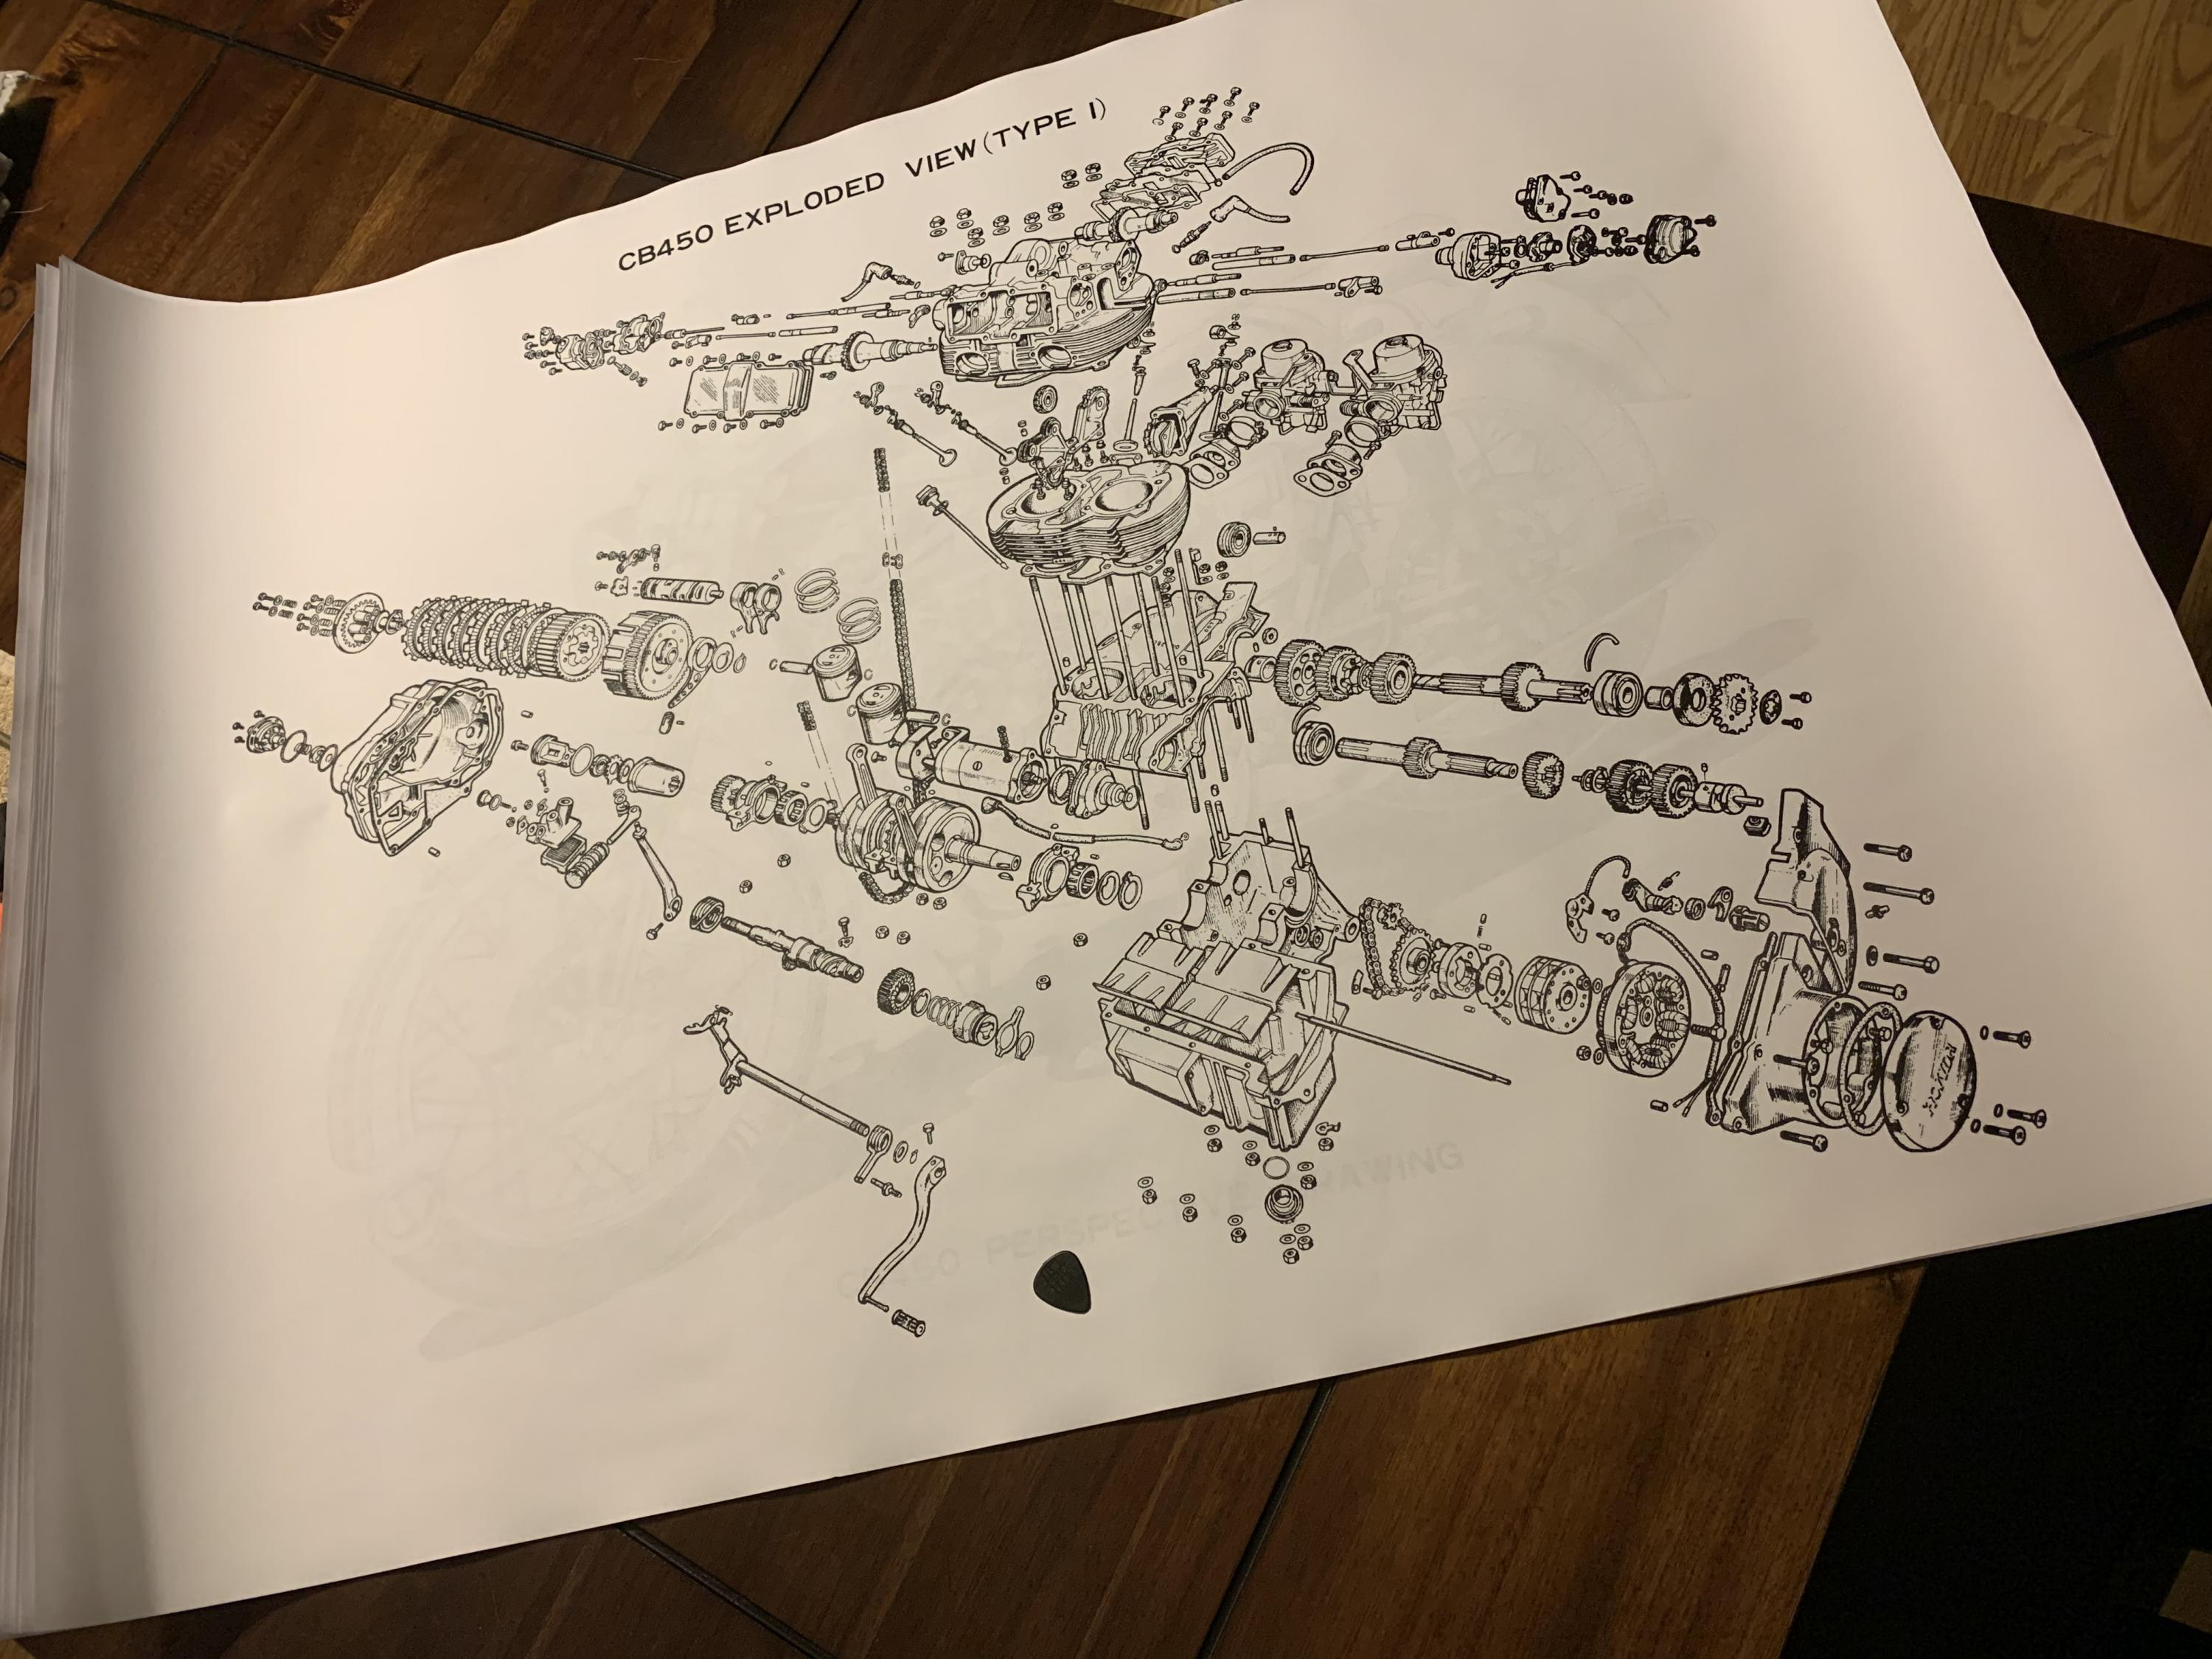 Cb450 perspective drawing poster-img_3214.jpg